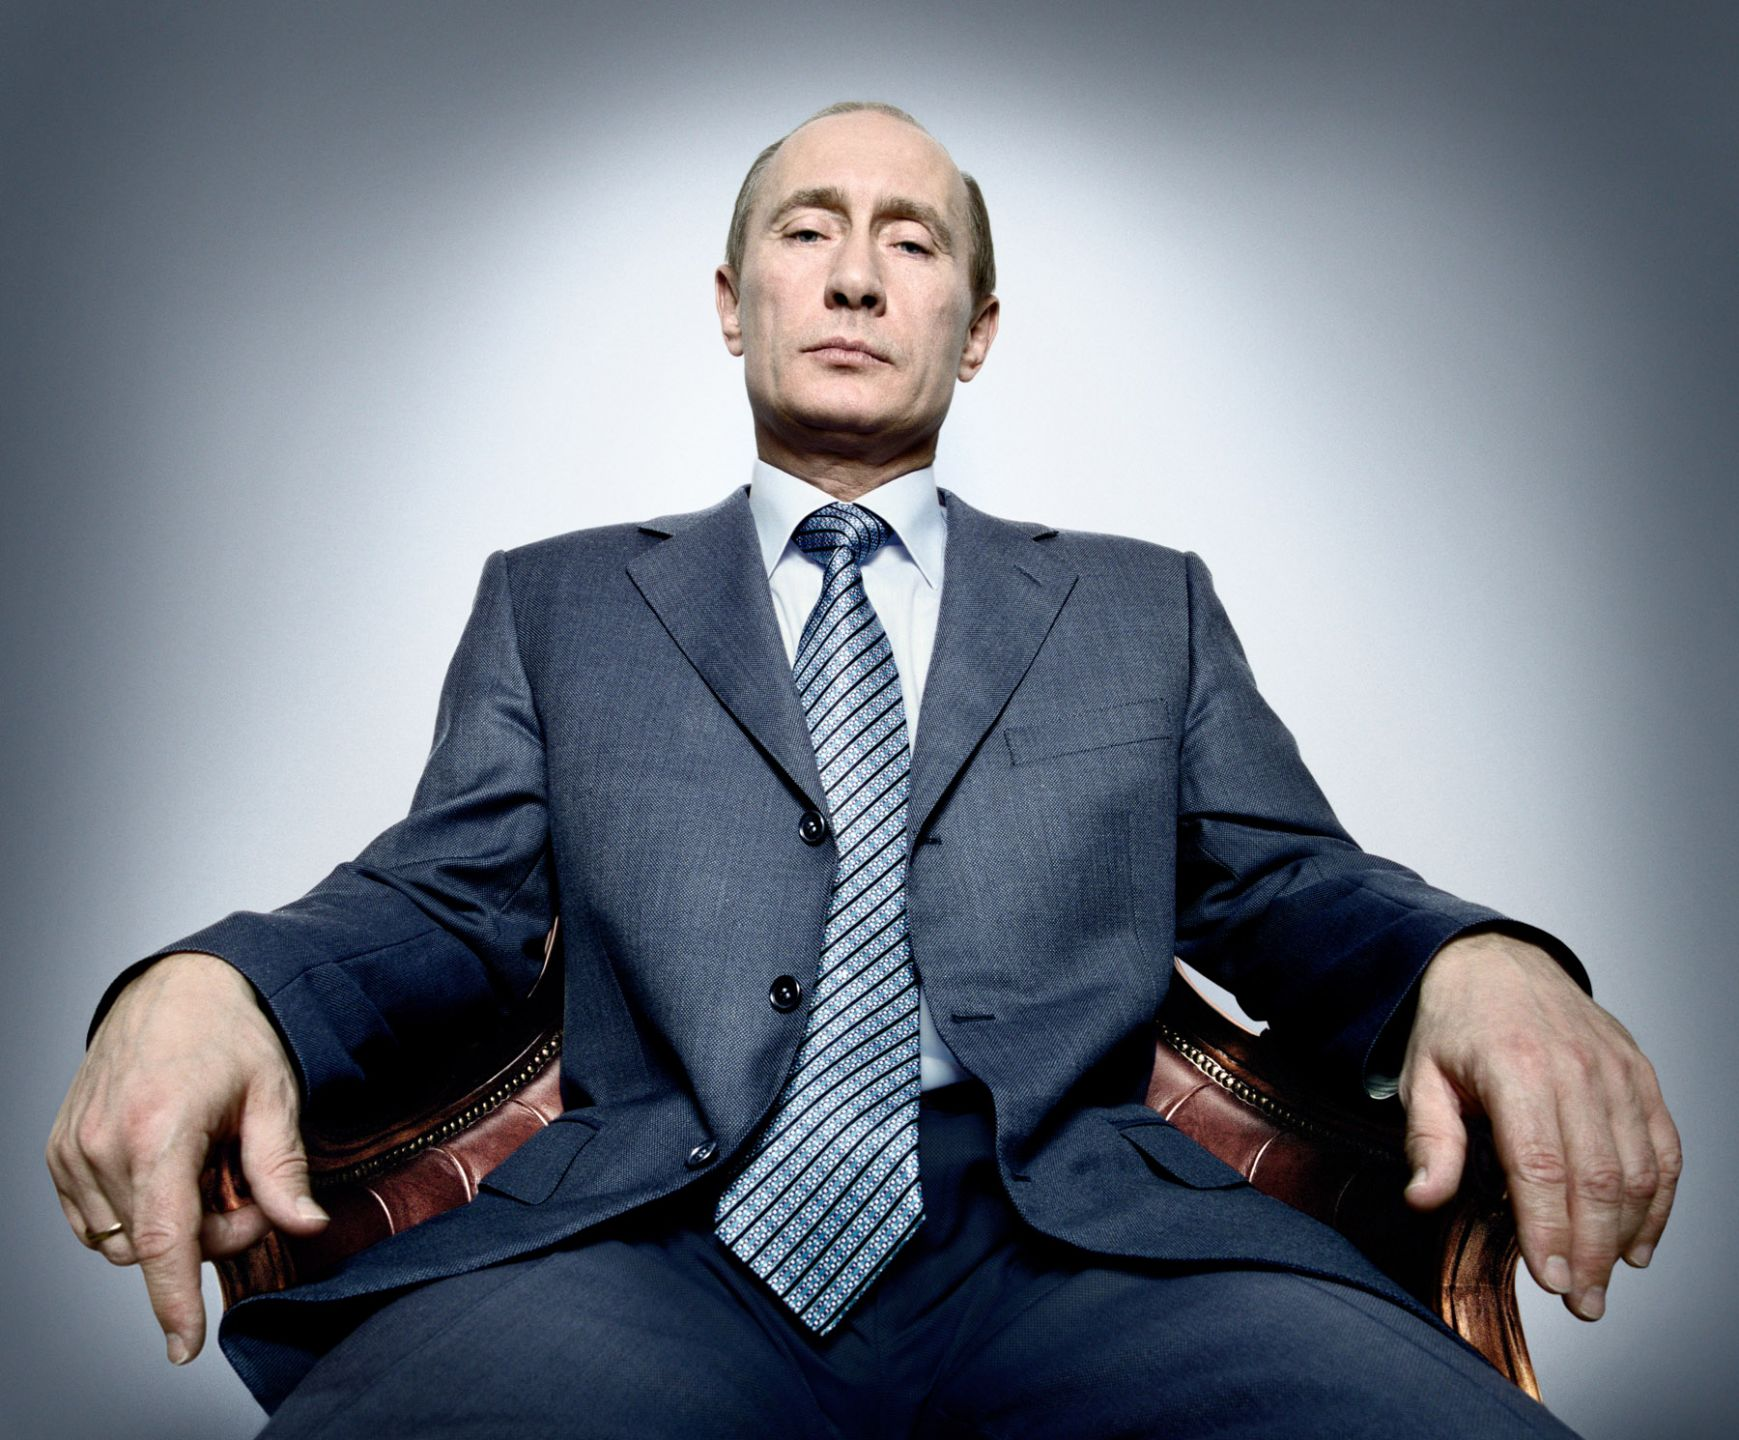 Putin portrait photography